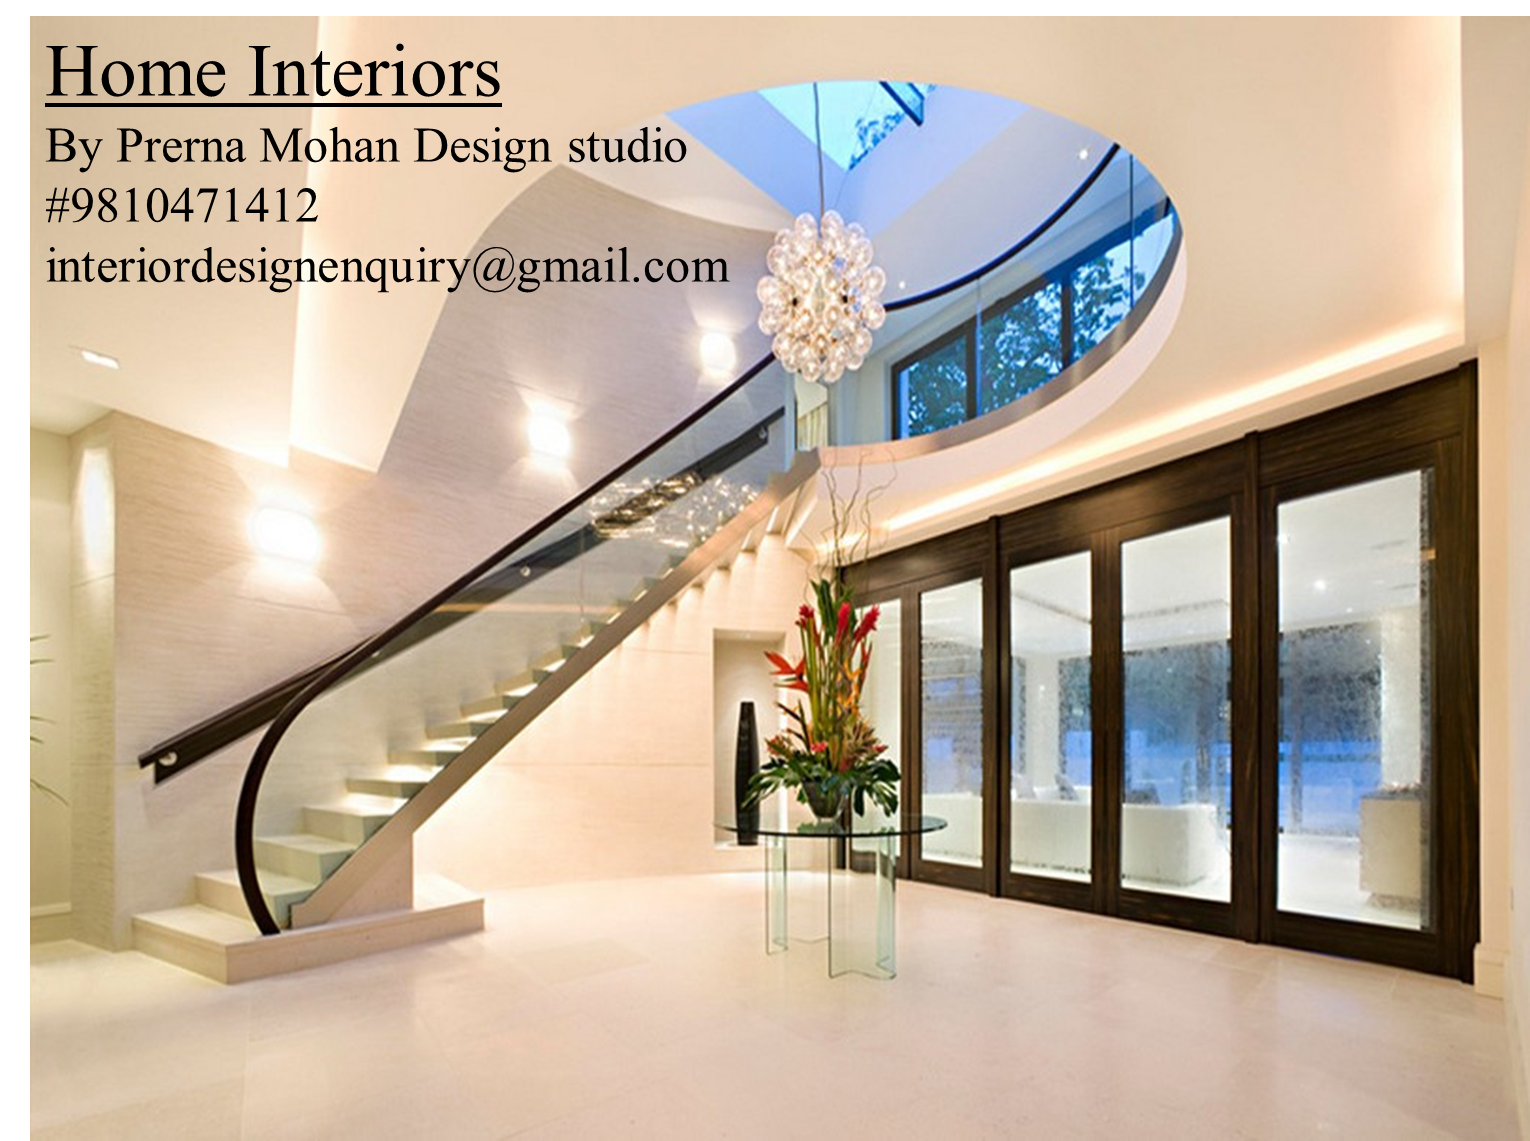 prerna mohan design studio is a professional and dynamic interior design company in delhi which offers comprehensive interior solutions for residential